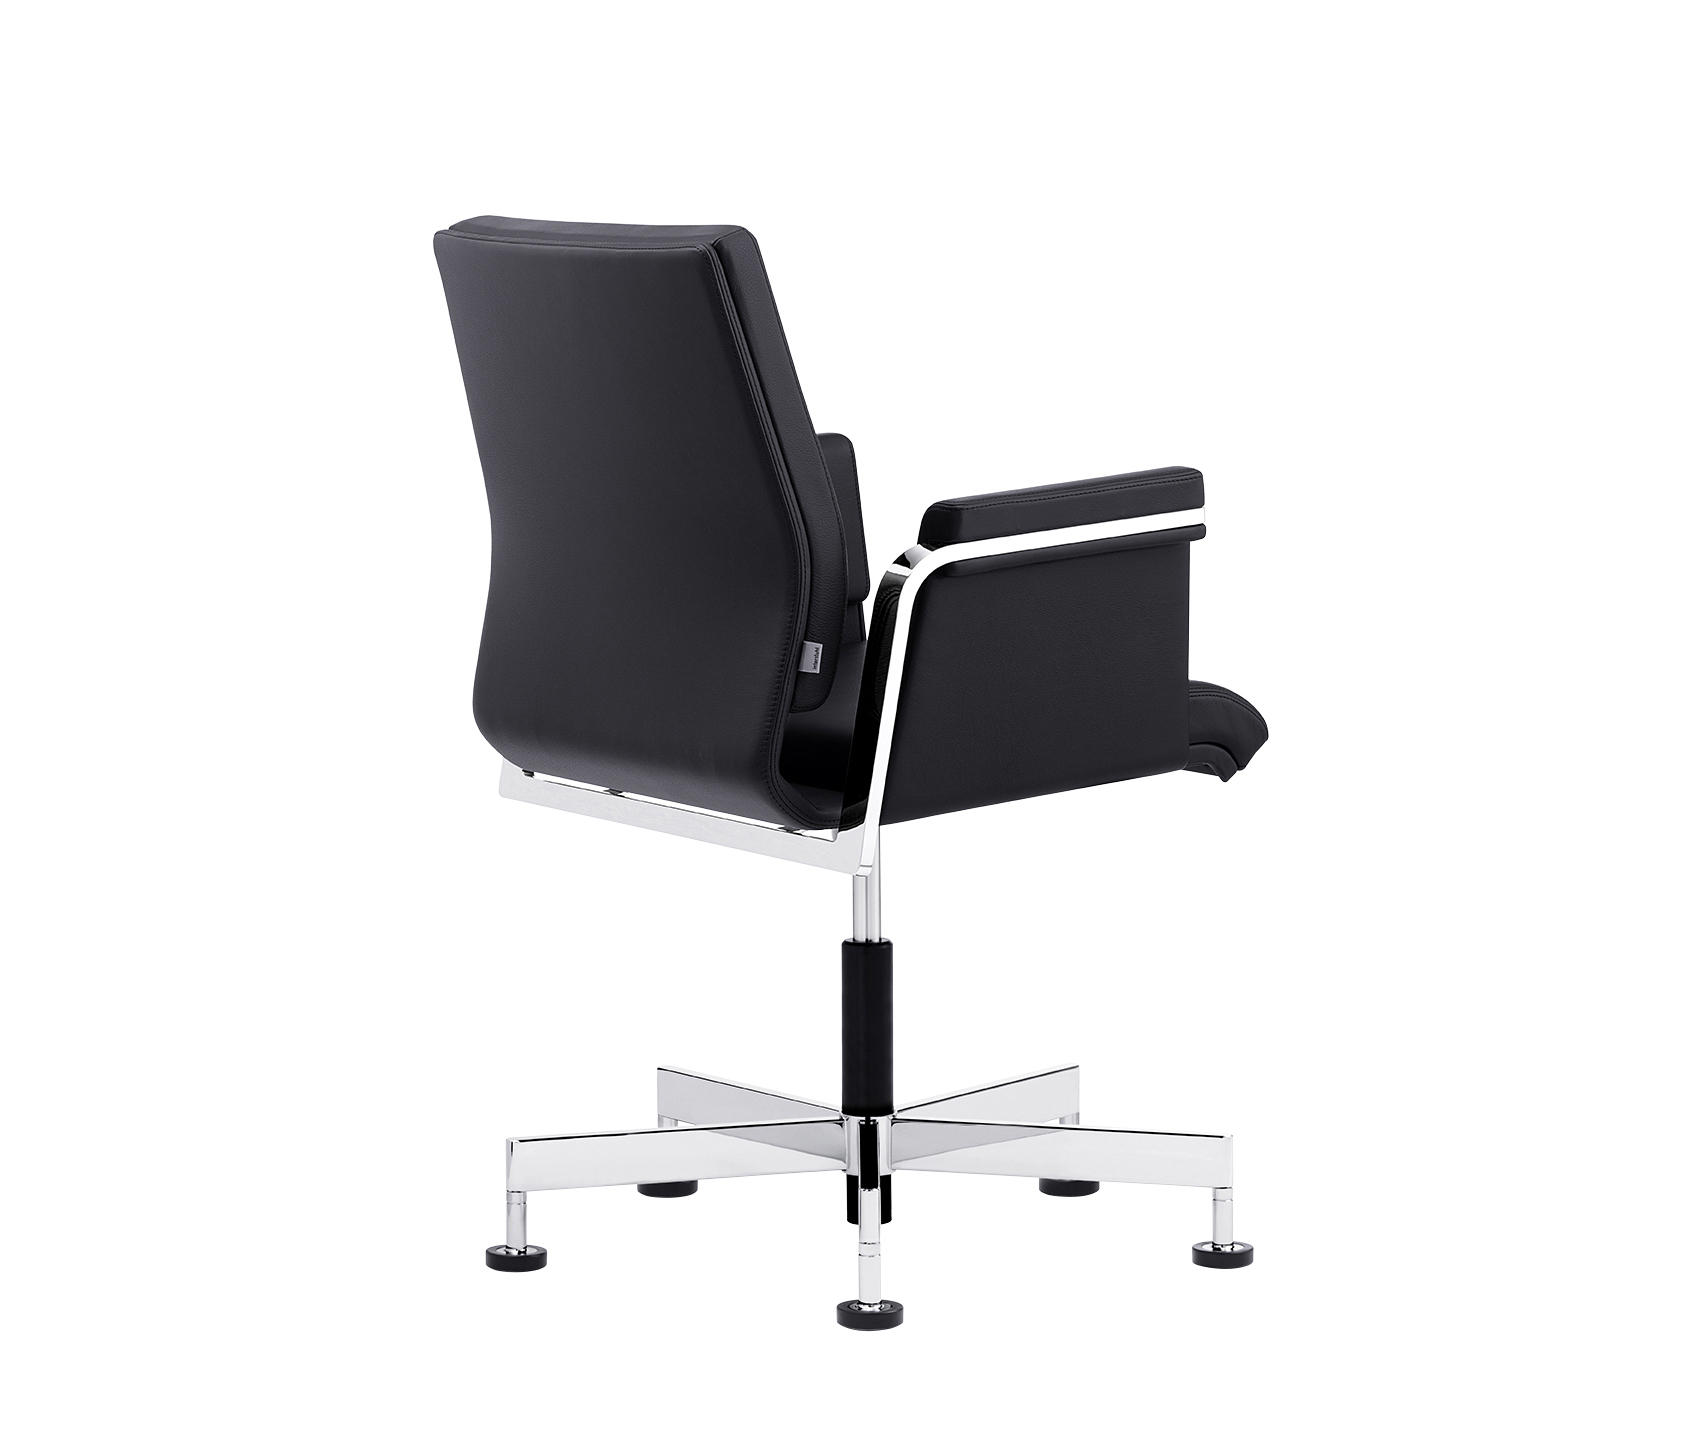 AXOS 150A - Visitors chairs / Side chairs from Interstuhl ...